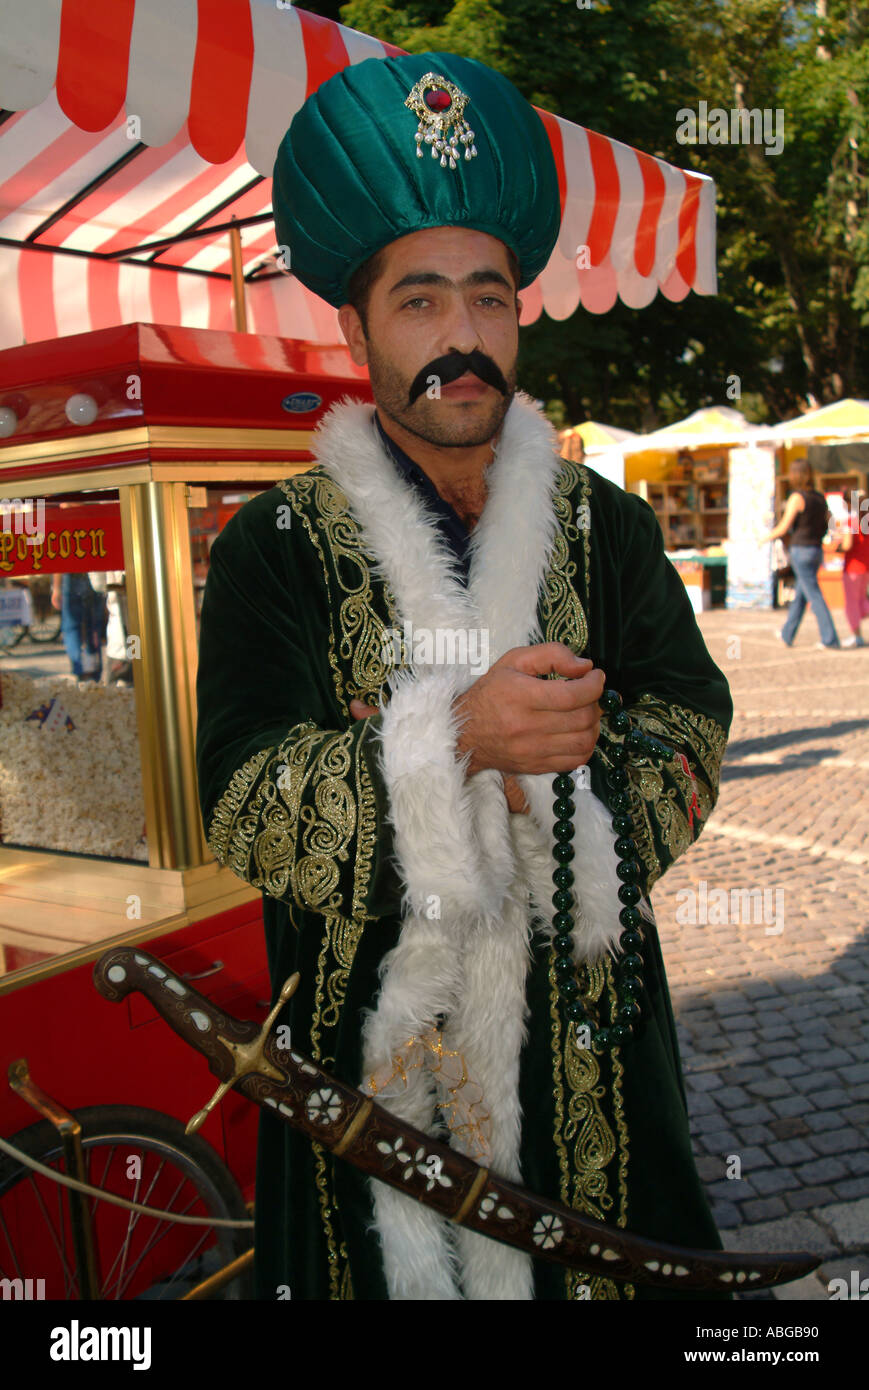 A Man In Ottoman Outfit Stock Photo 2378639 Alamy